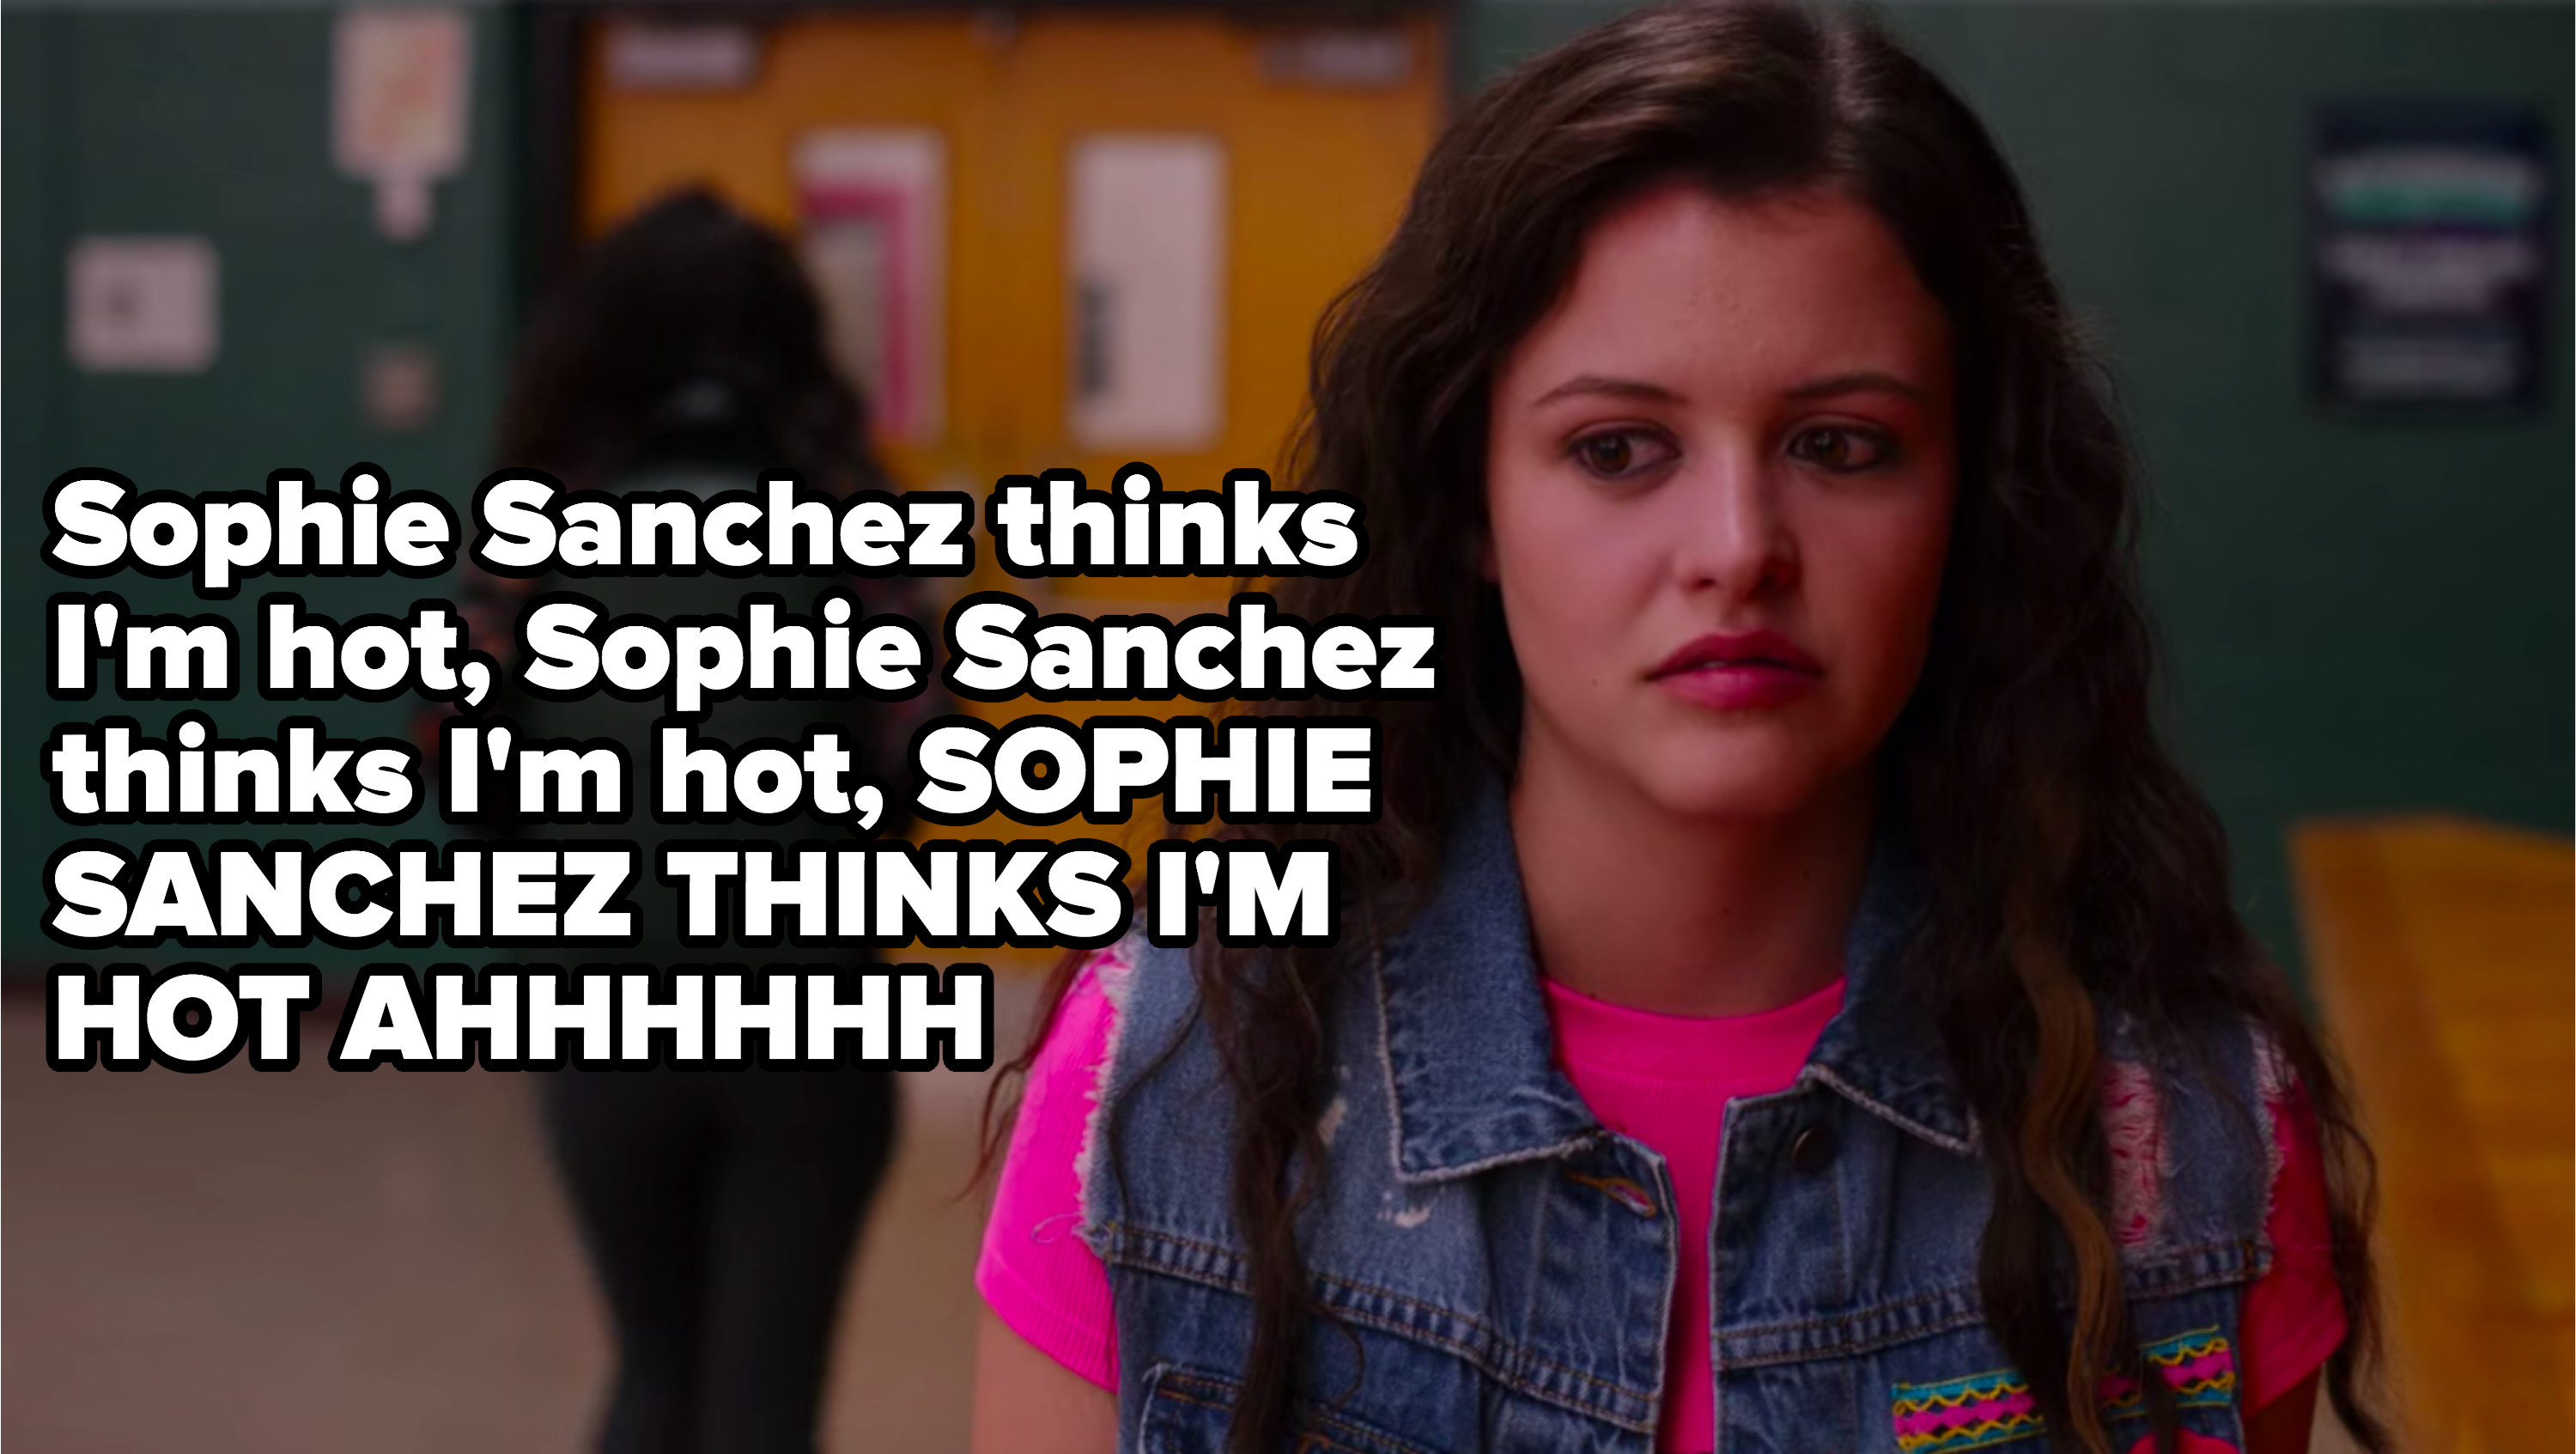 "Max captioned: ""Sophie Sanchez thinks I'm hot, ahhhh!"""